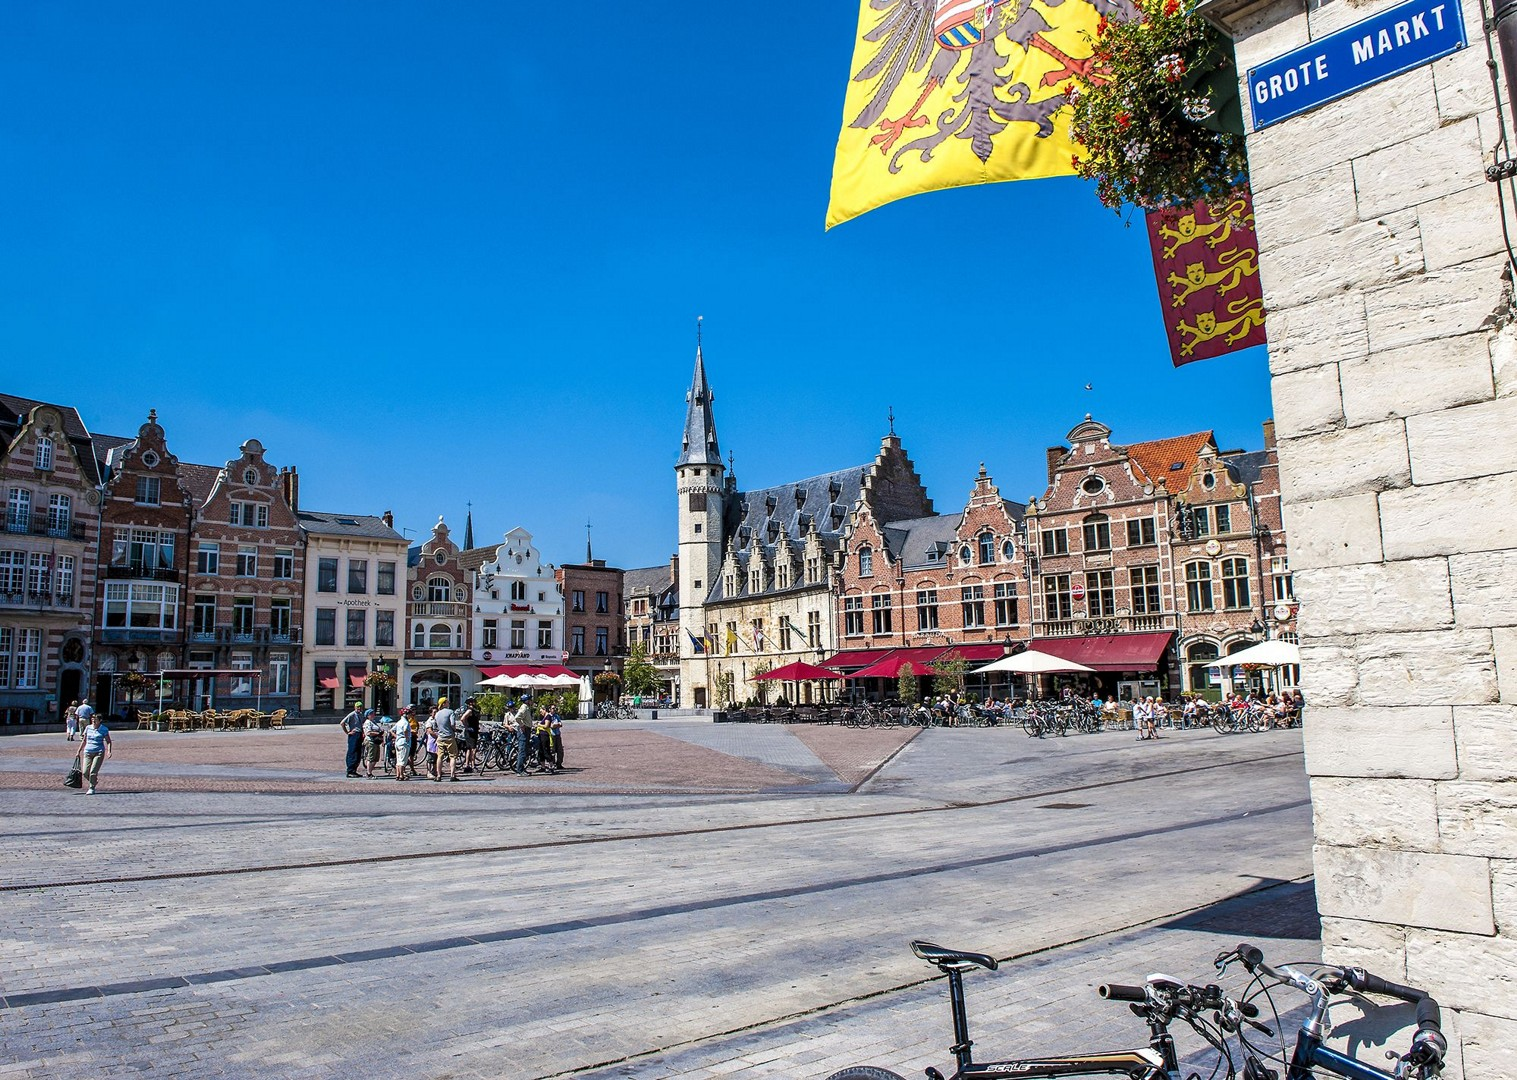 premium-cycle-tours-holland-belgium-grote-markt-culture-food.jpg - Holland and Belgium - Bruges to Amsterdam - Premium Bike and Barge Holiday - Leisure Cycling